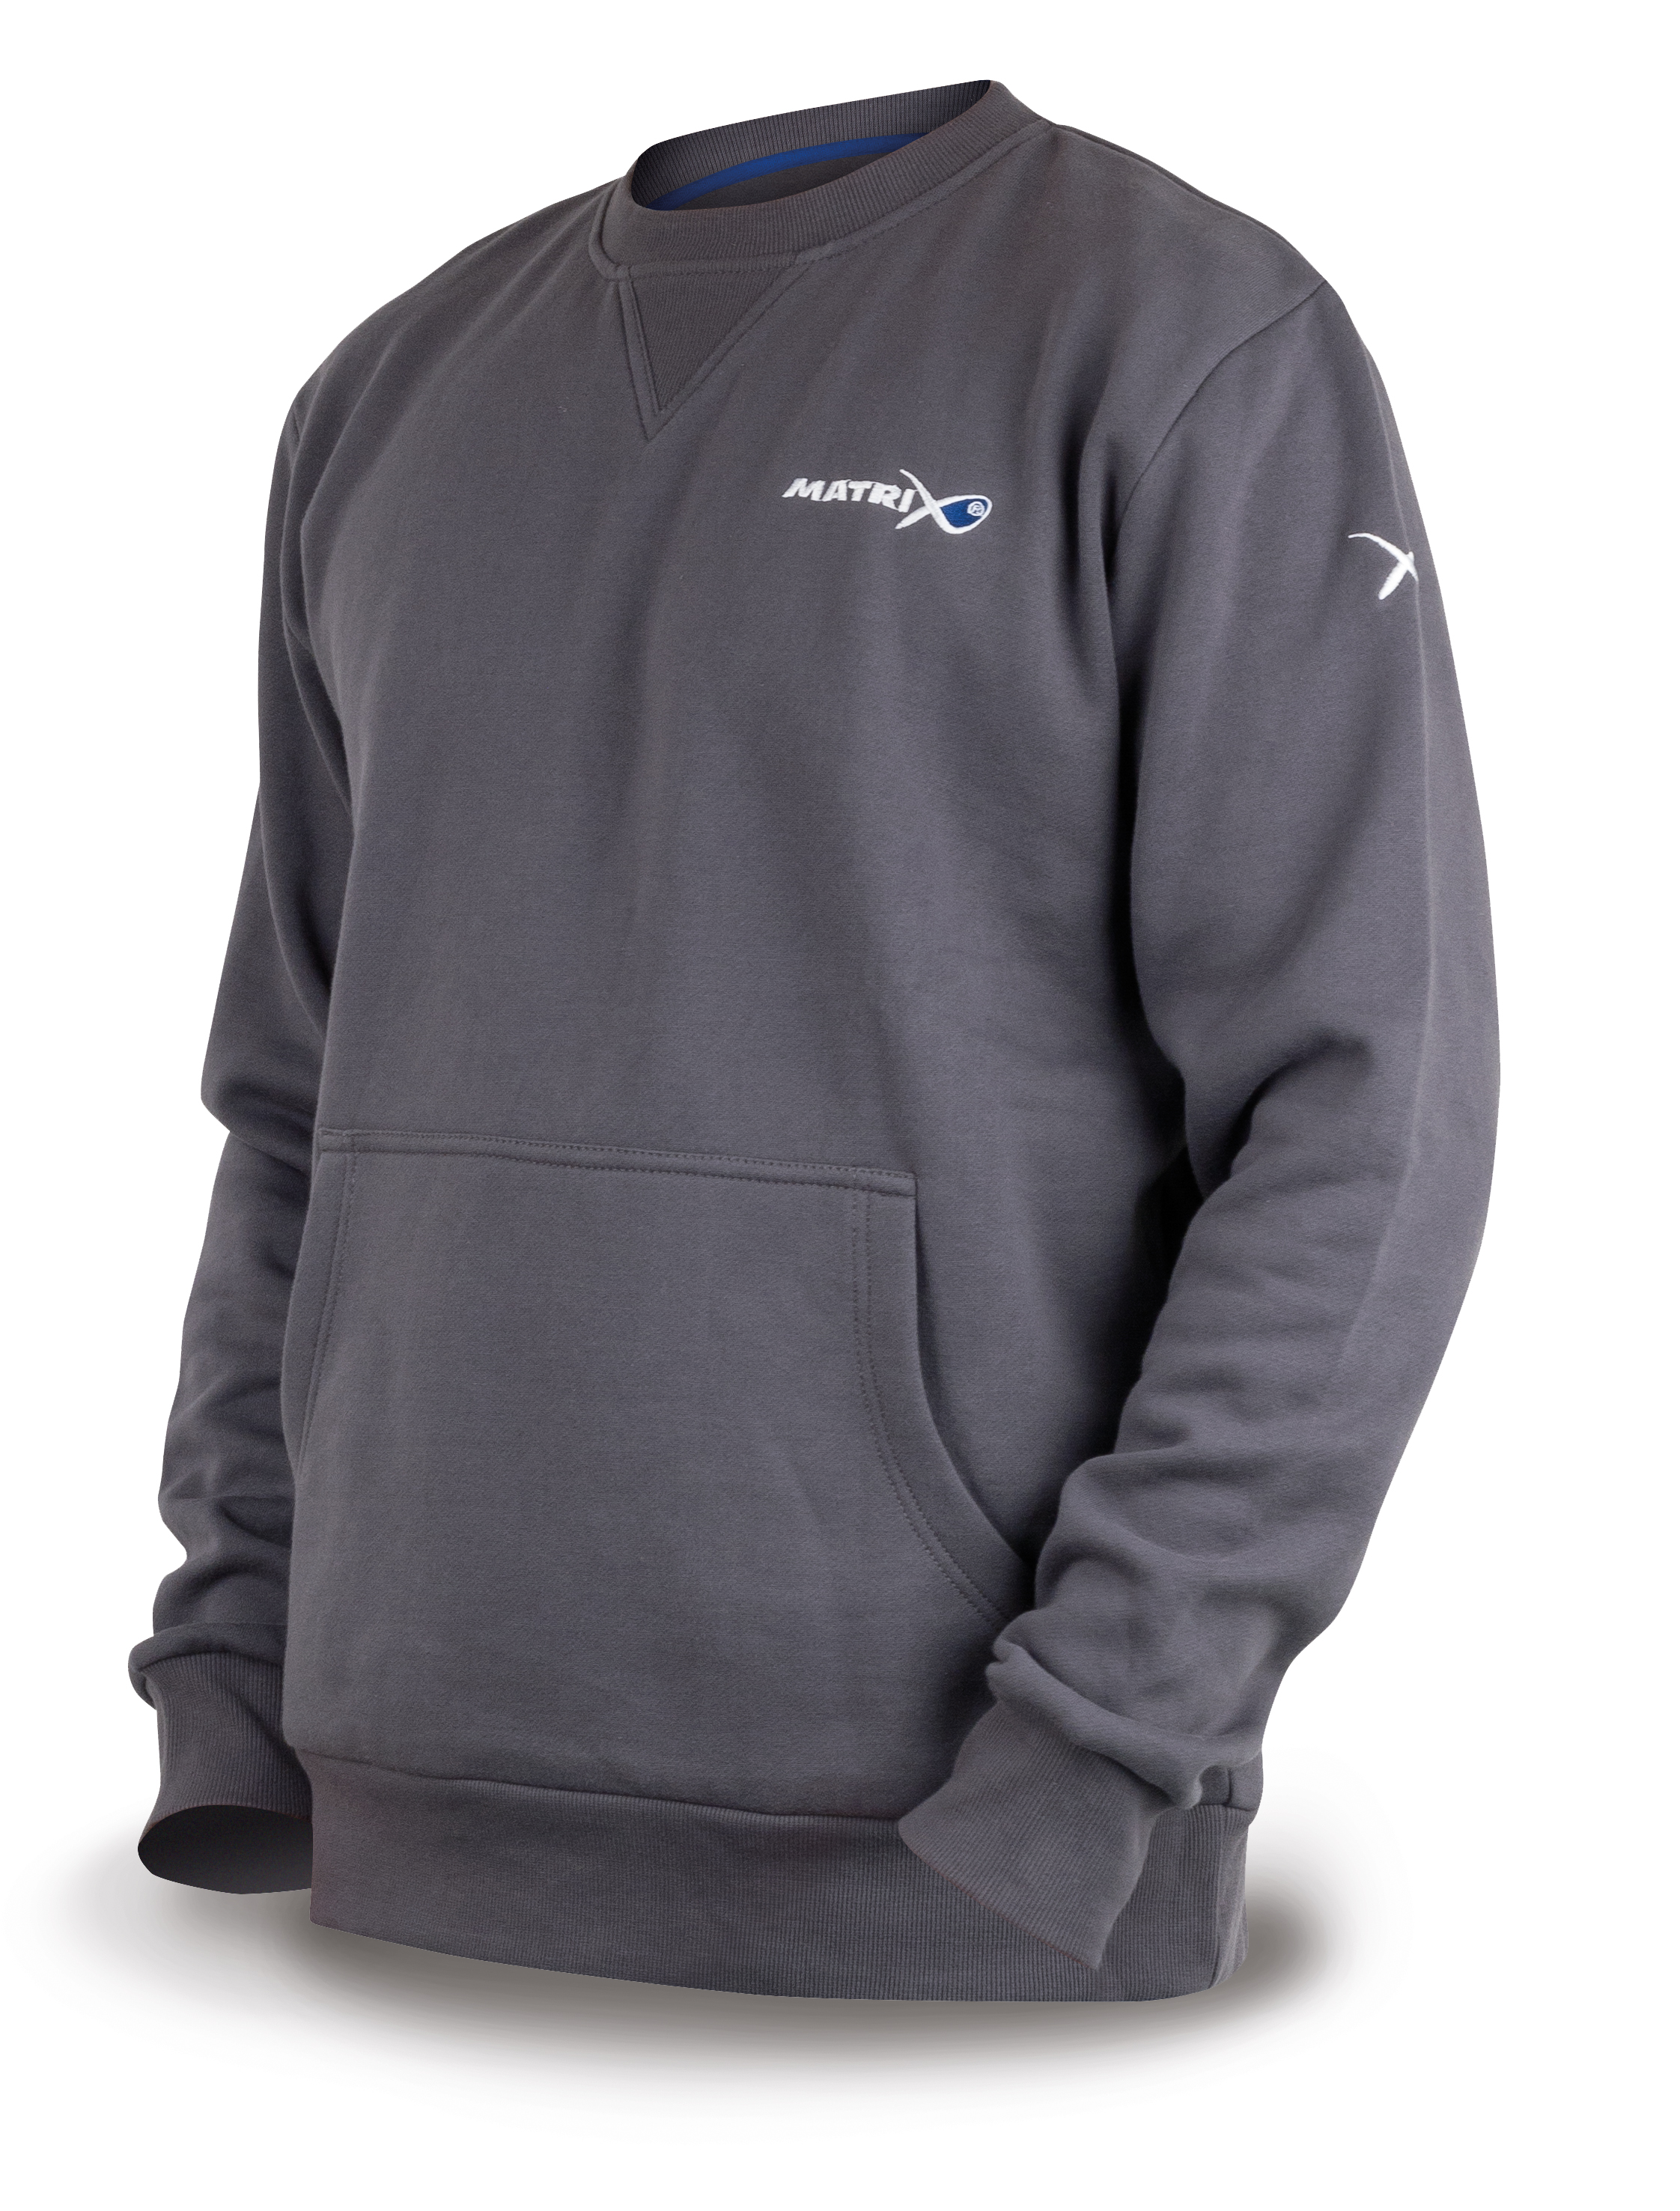 MATRIX GREY RIBBED CREW SWEATSHIRT